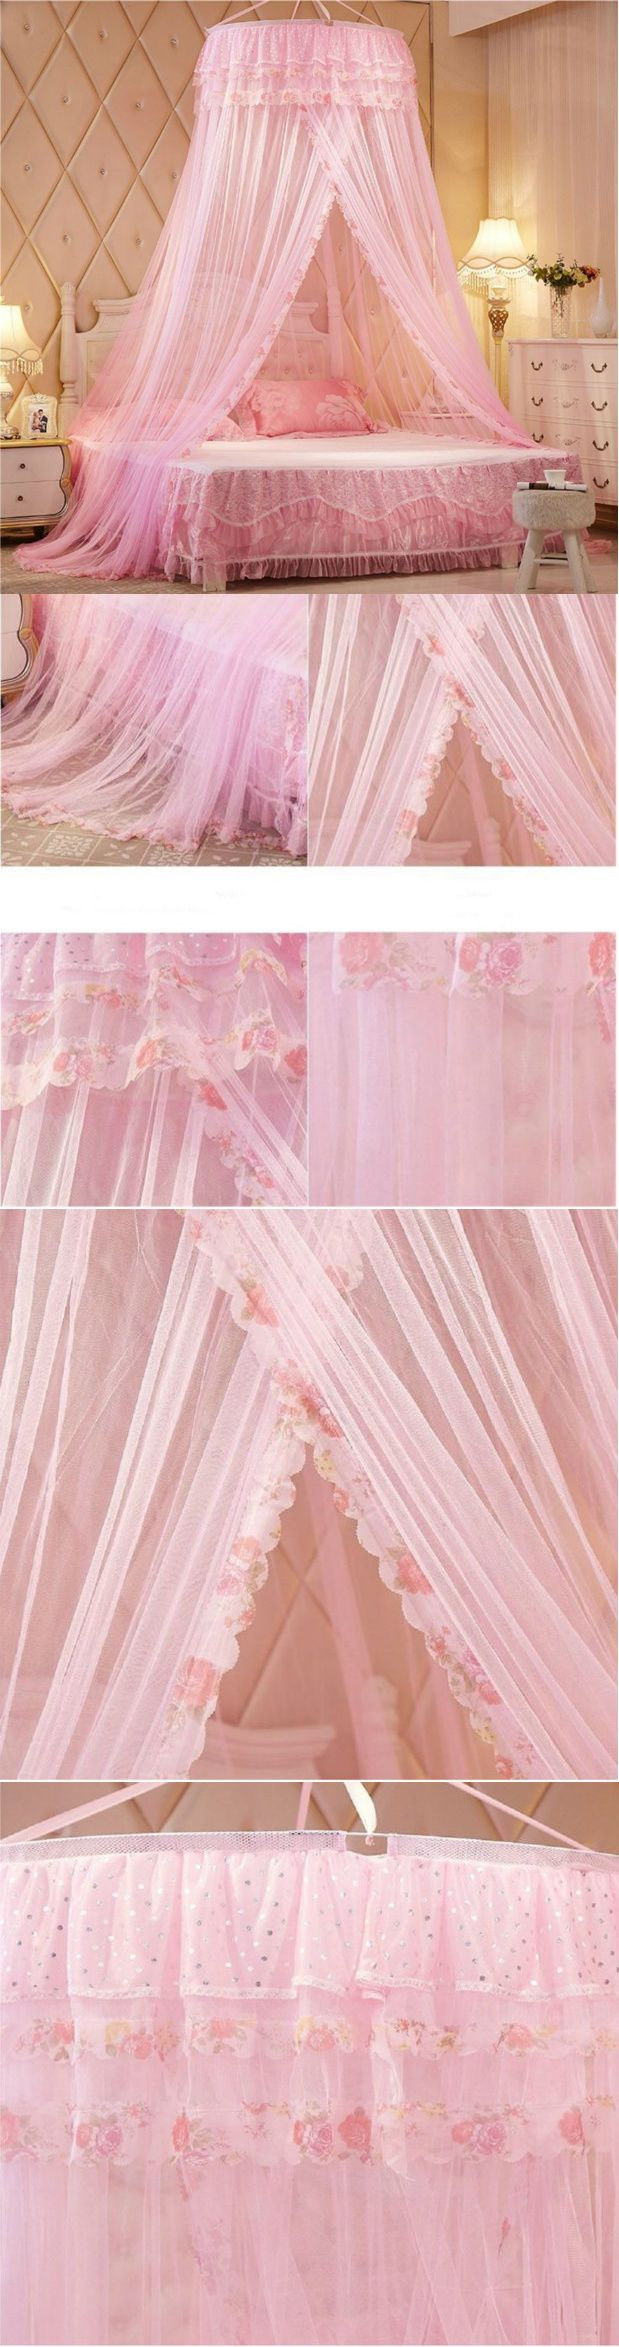 Canopies and Netting 48090: Princess Canopy Tent Bed Toddler Baby Girl Women Pink Sparkle Mosquito Net New -> BUY IT NOW ONLY: $43.99 on eBay!